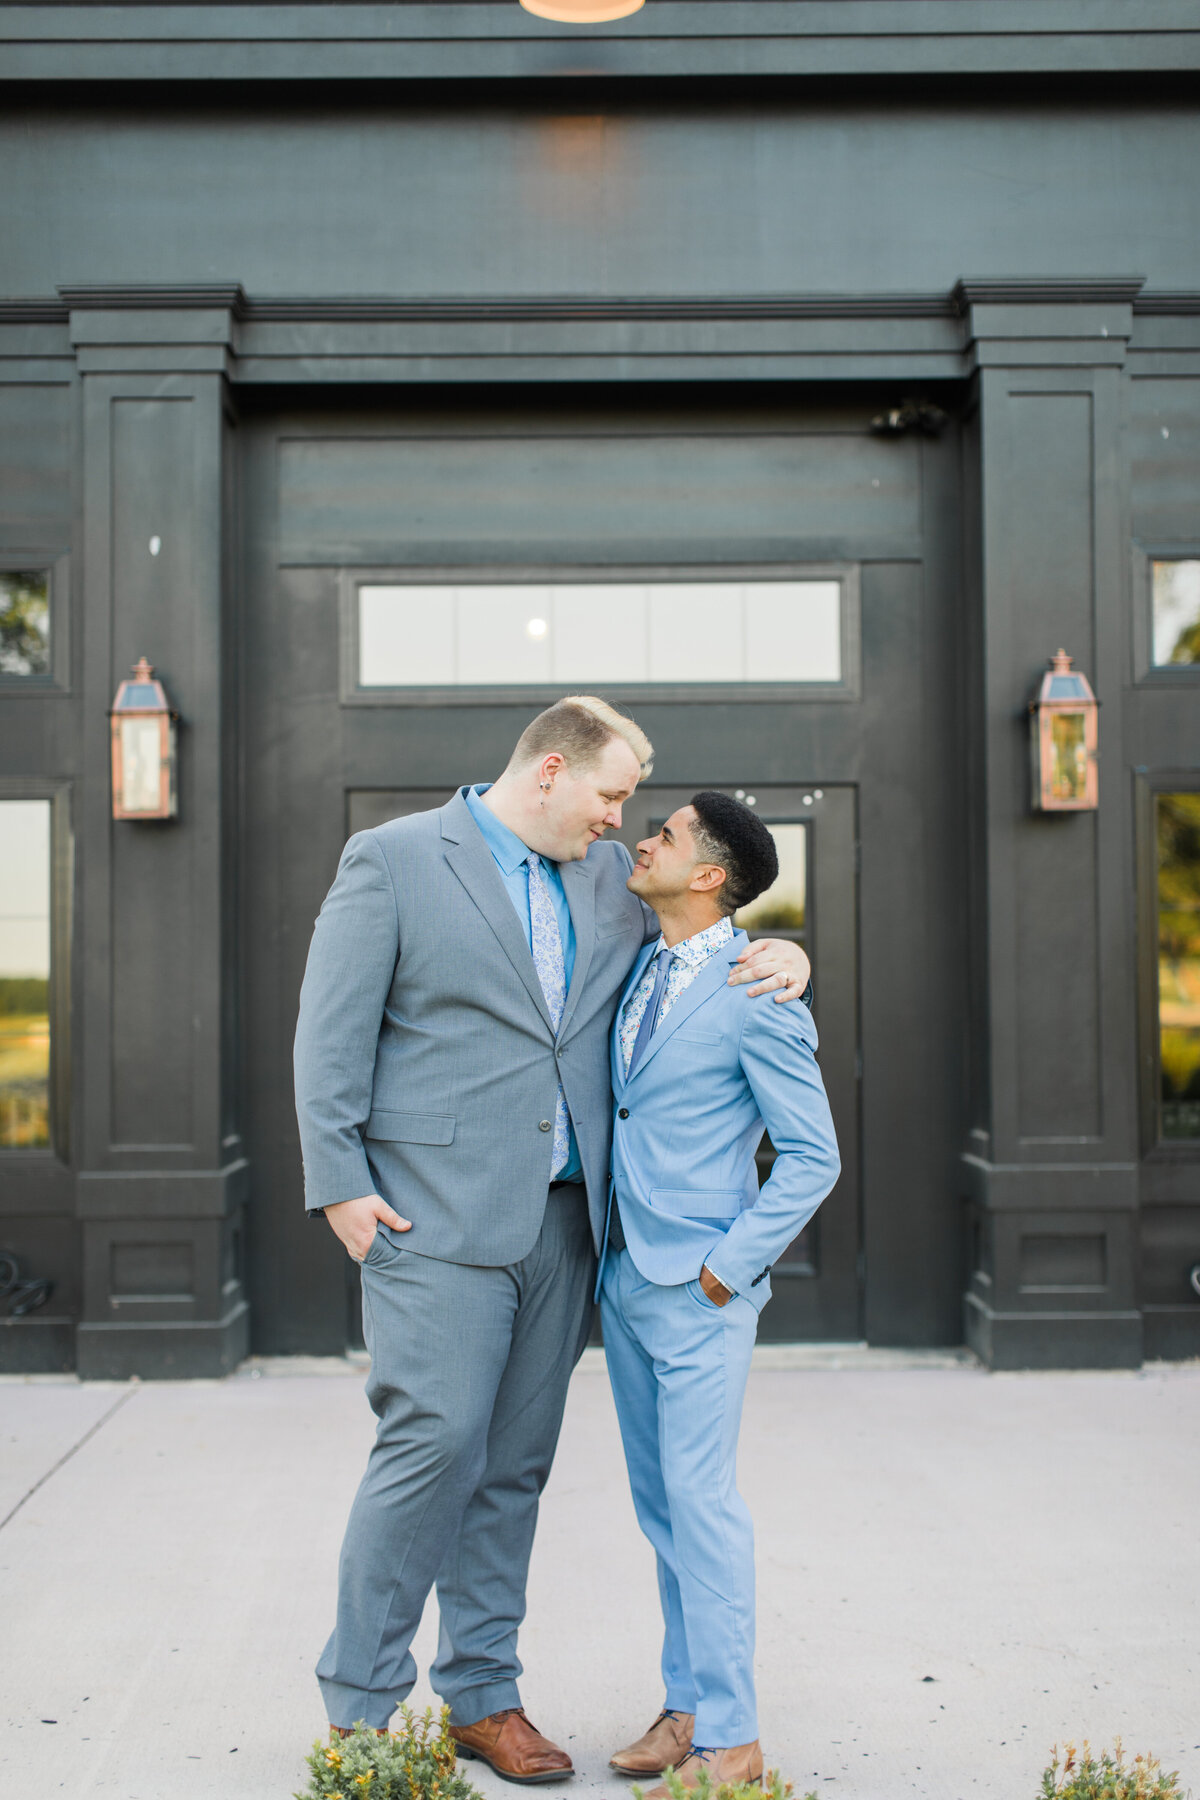 LGBTQ_Engagement_Session_Renault_Winery_Galloway_New_Jersey-54